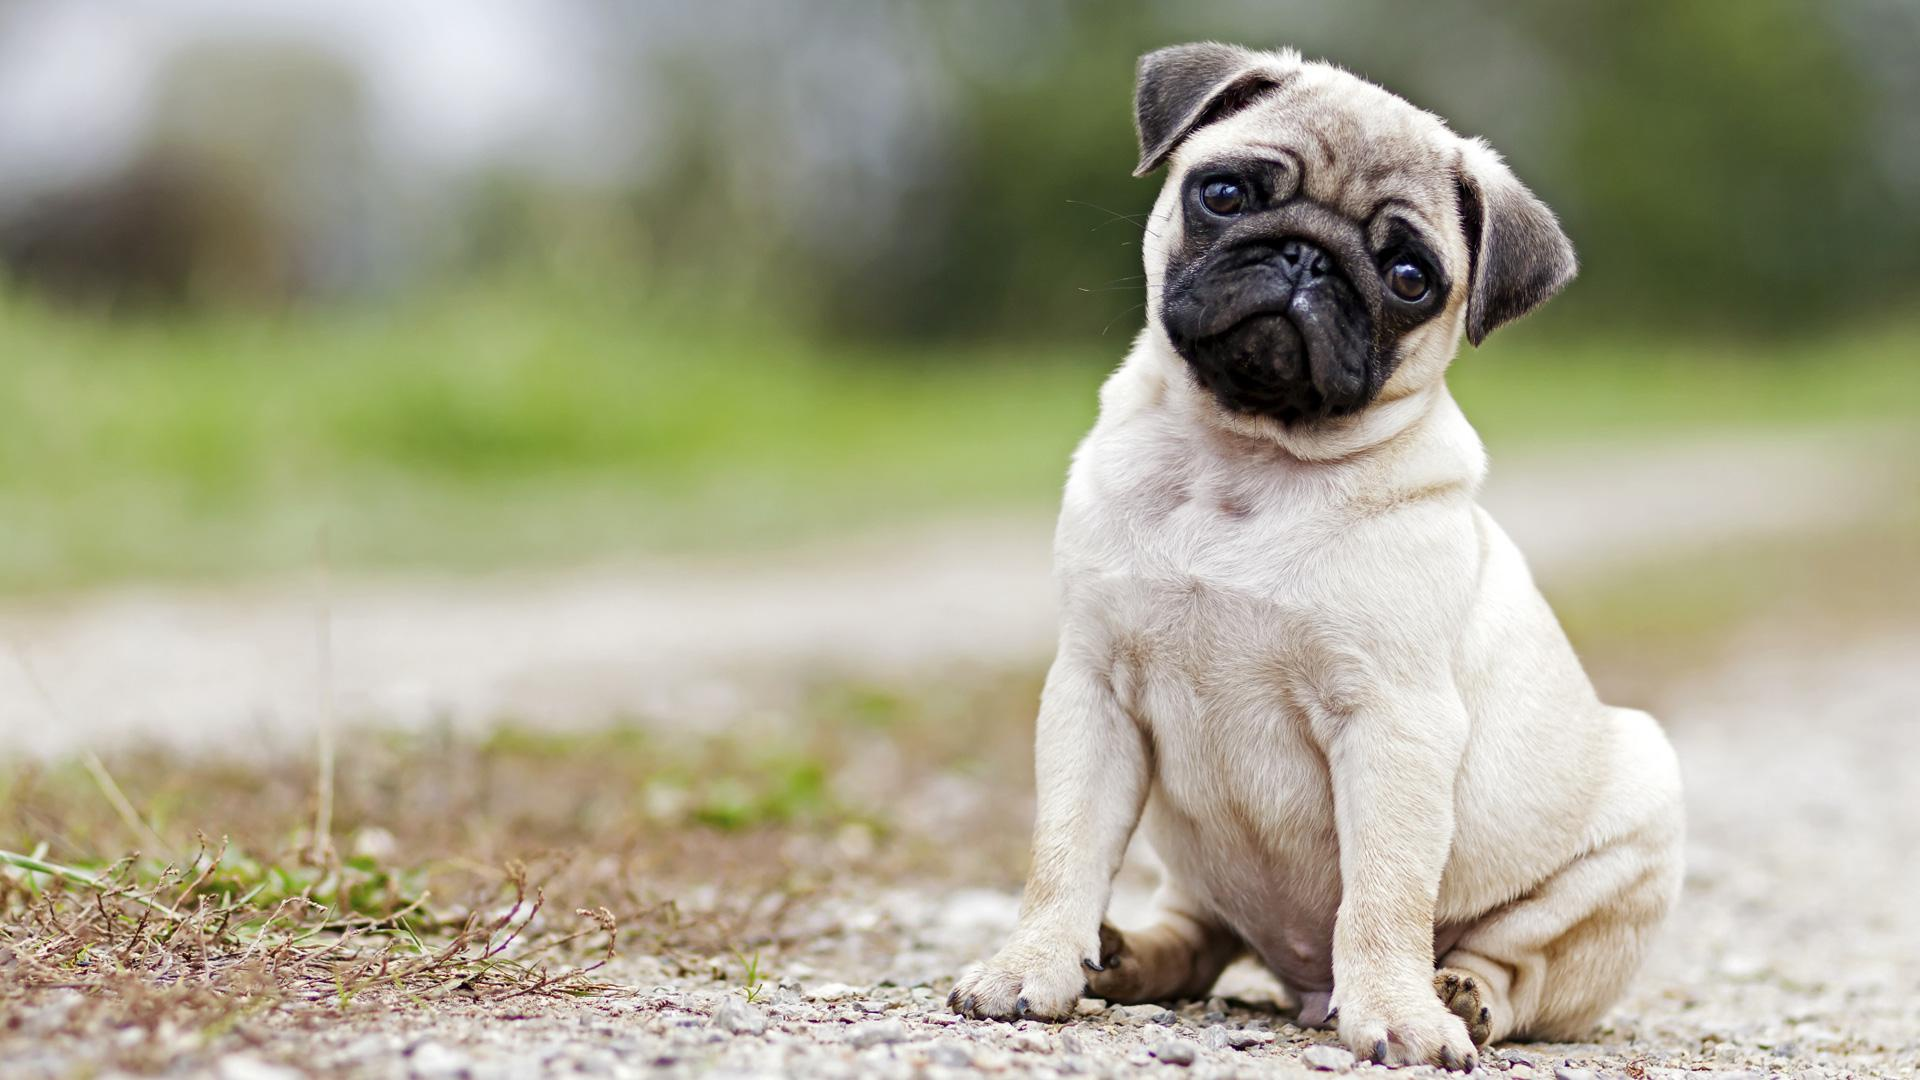 Pug puppies should rule the world, and this video proves it